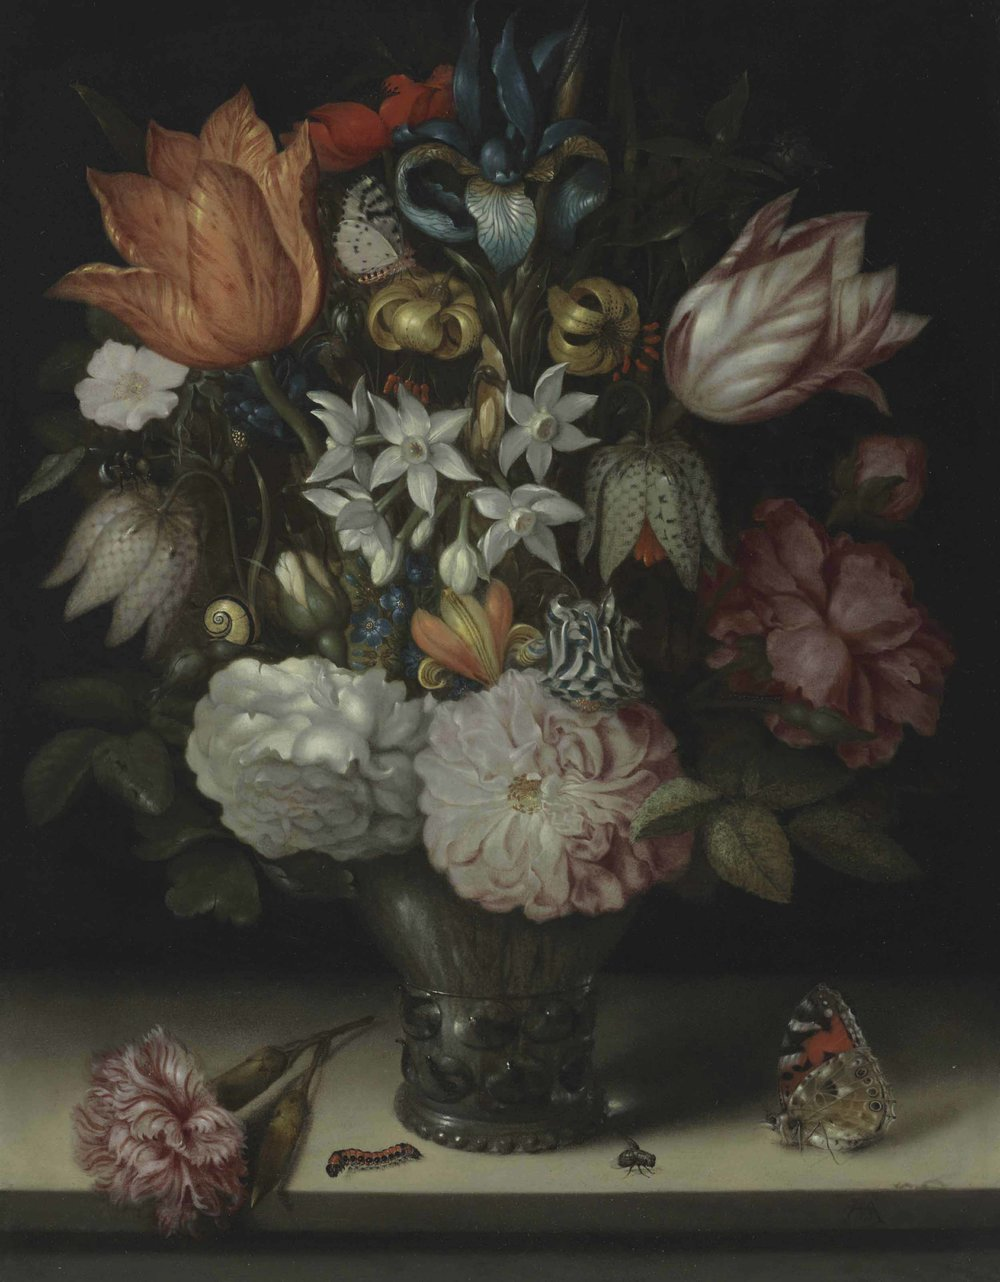 'An iris, tulips, narcissi, roses and fritillaries in a glass vase with various insects, on a stone ledge'